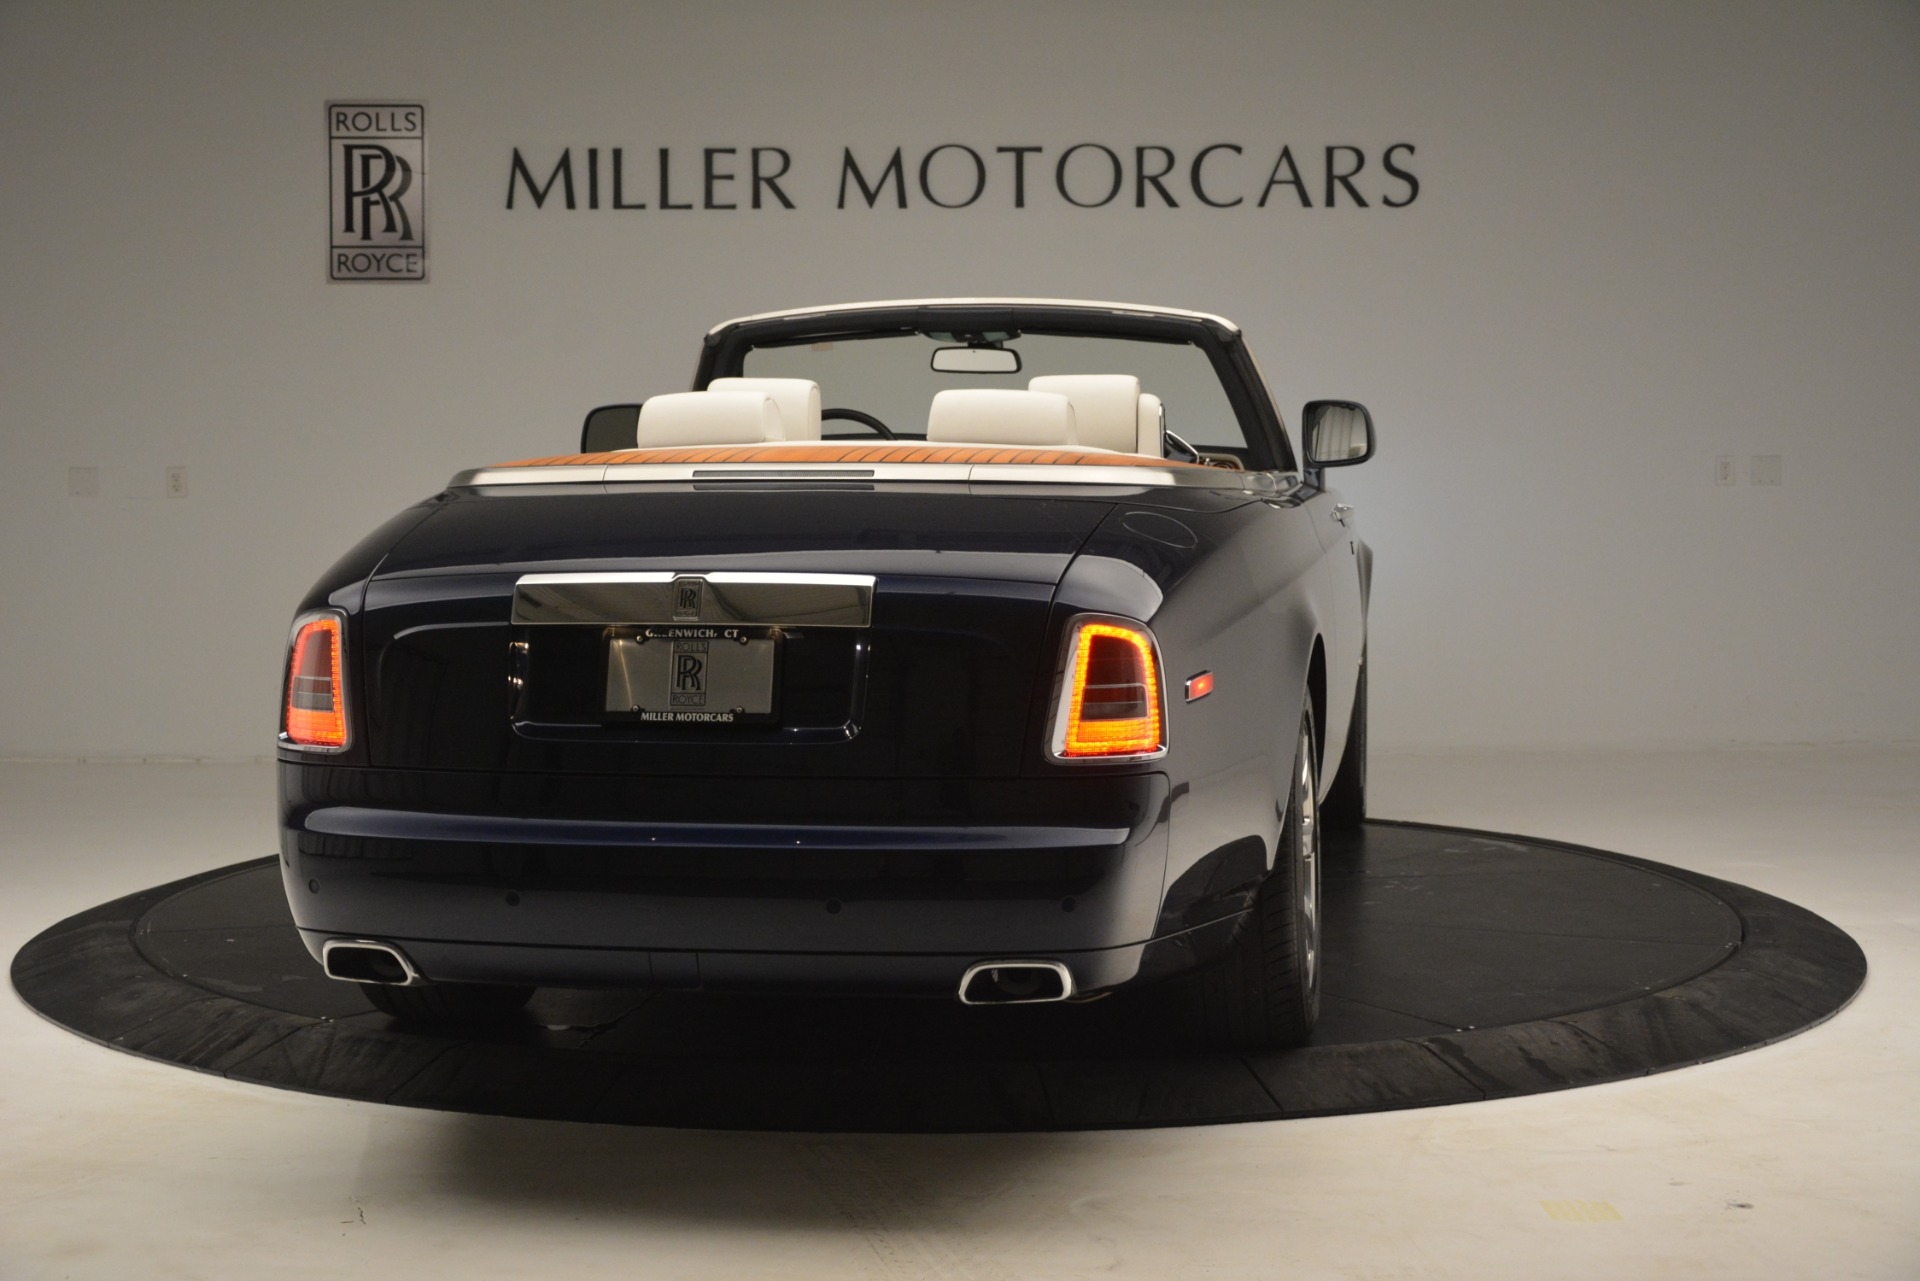 Used 2013 Rolls-Royce Phantom Drophead Coupe  For Sale In Westport, CT 2999_p10